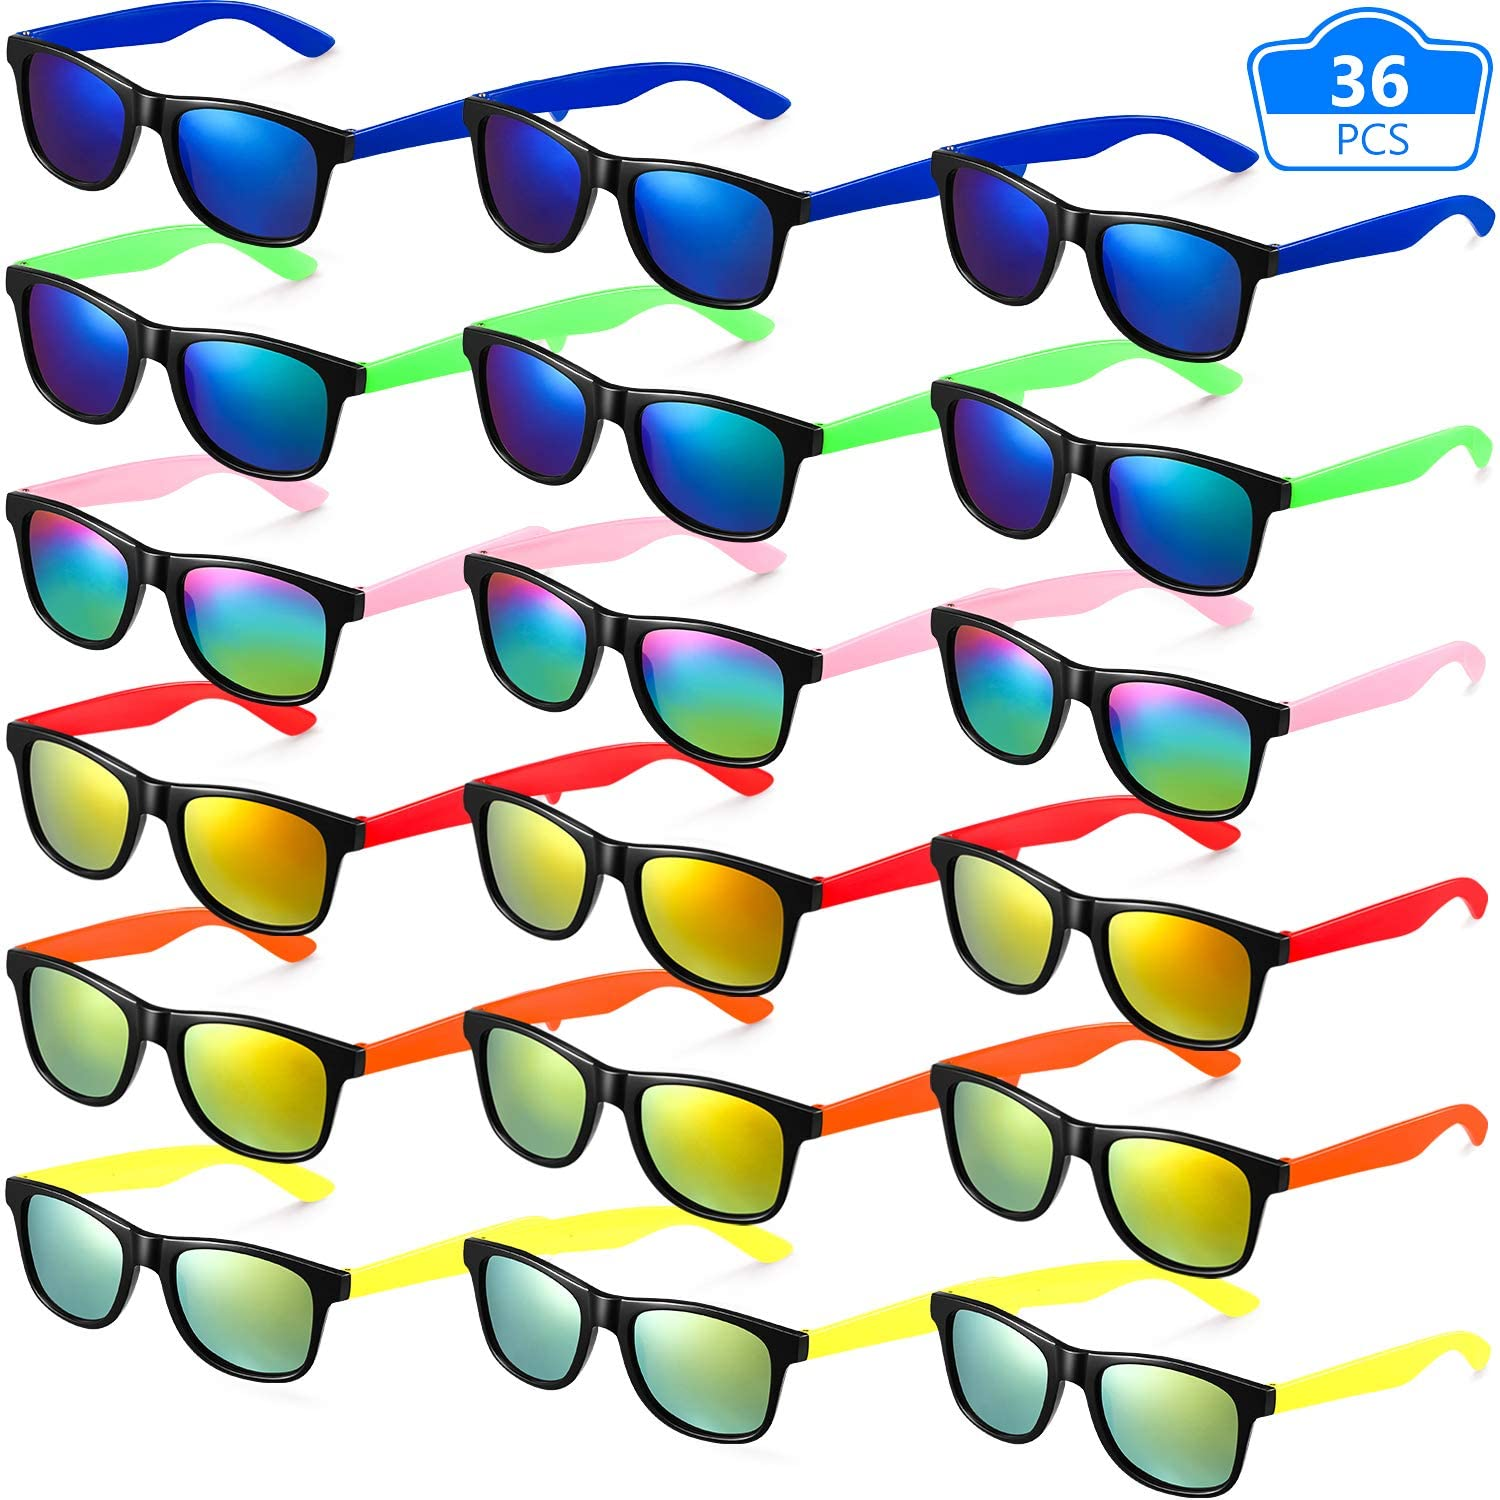 36 Pieces Neon Sunglasses Kids Sunglasses Party Favors Cool Colors Neon Sunglasses for Boys and Girls Birthday Graduation Party Supplies, Beach, Pool Party Favors